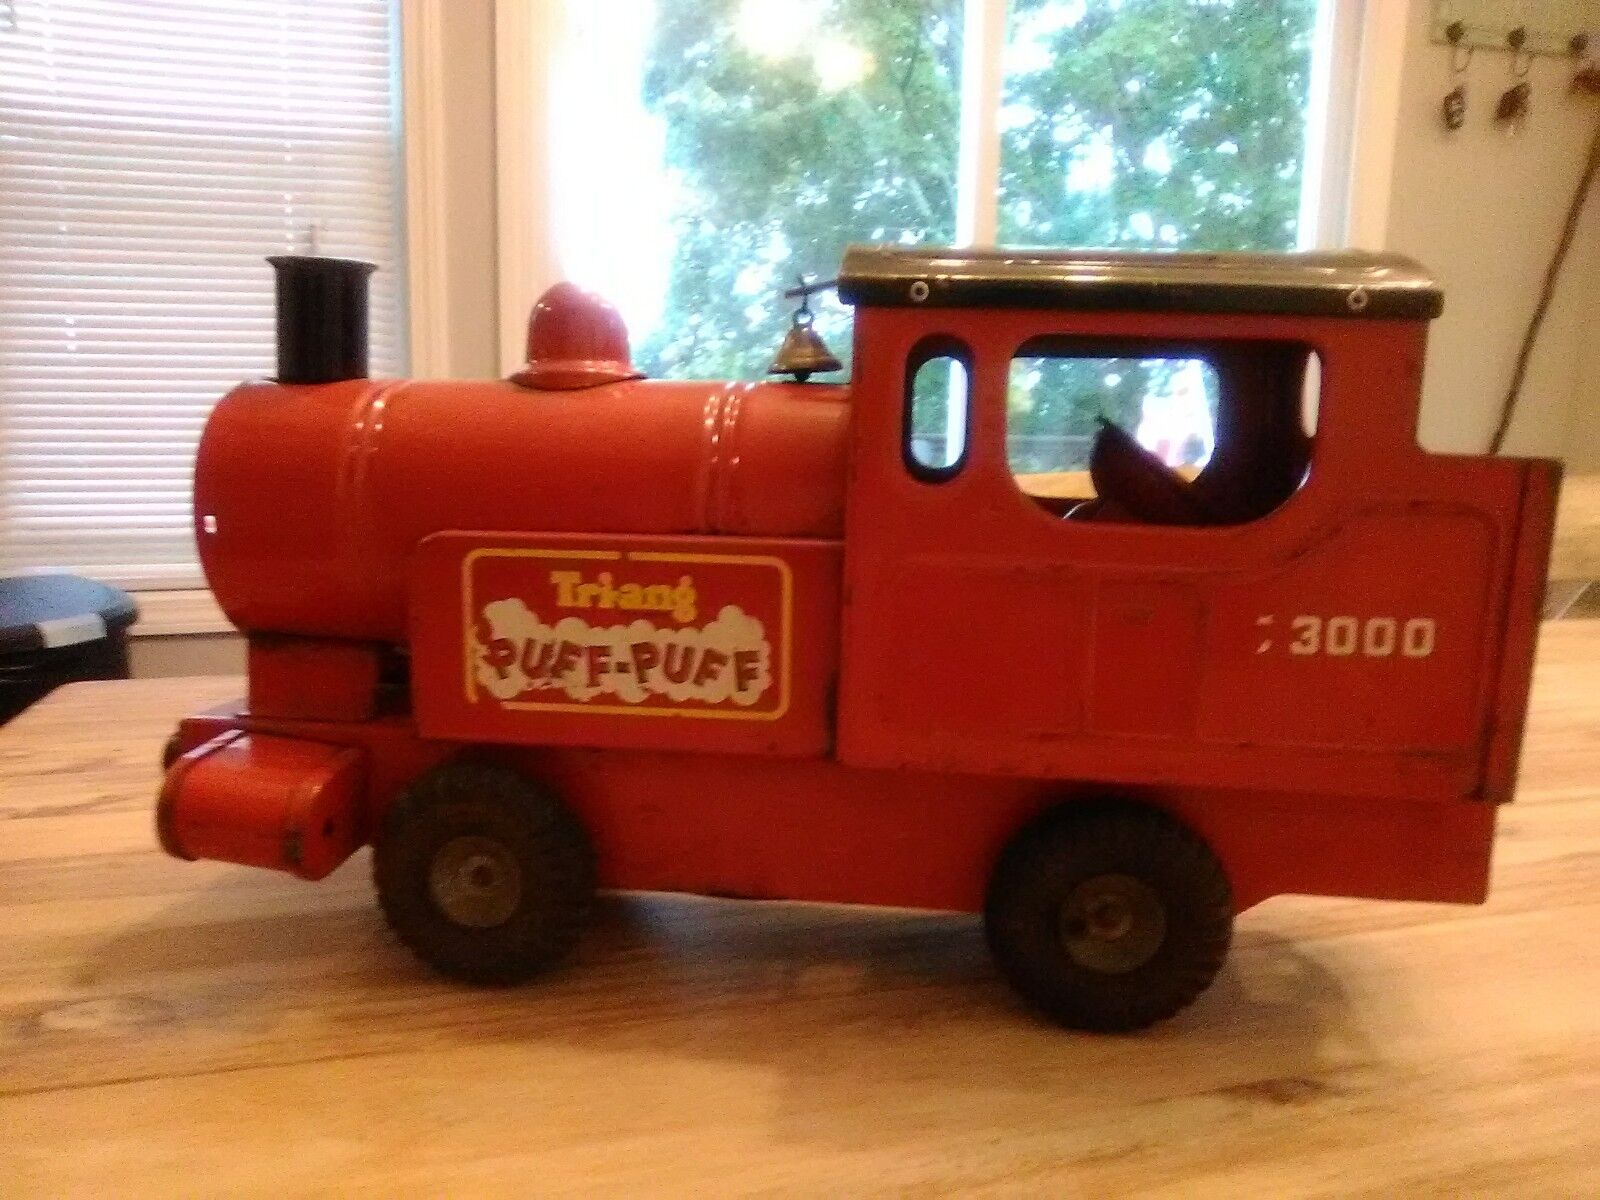 Vintage Tri-ang  Puff Puff Locomotive Train 1950's Made in England  livraison gratuite!